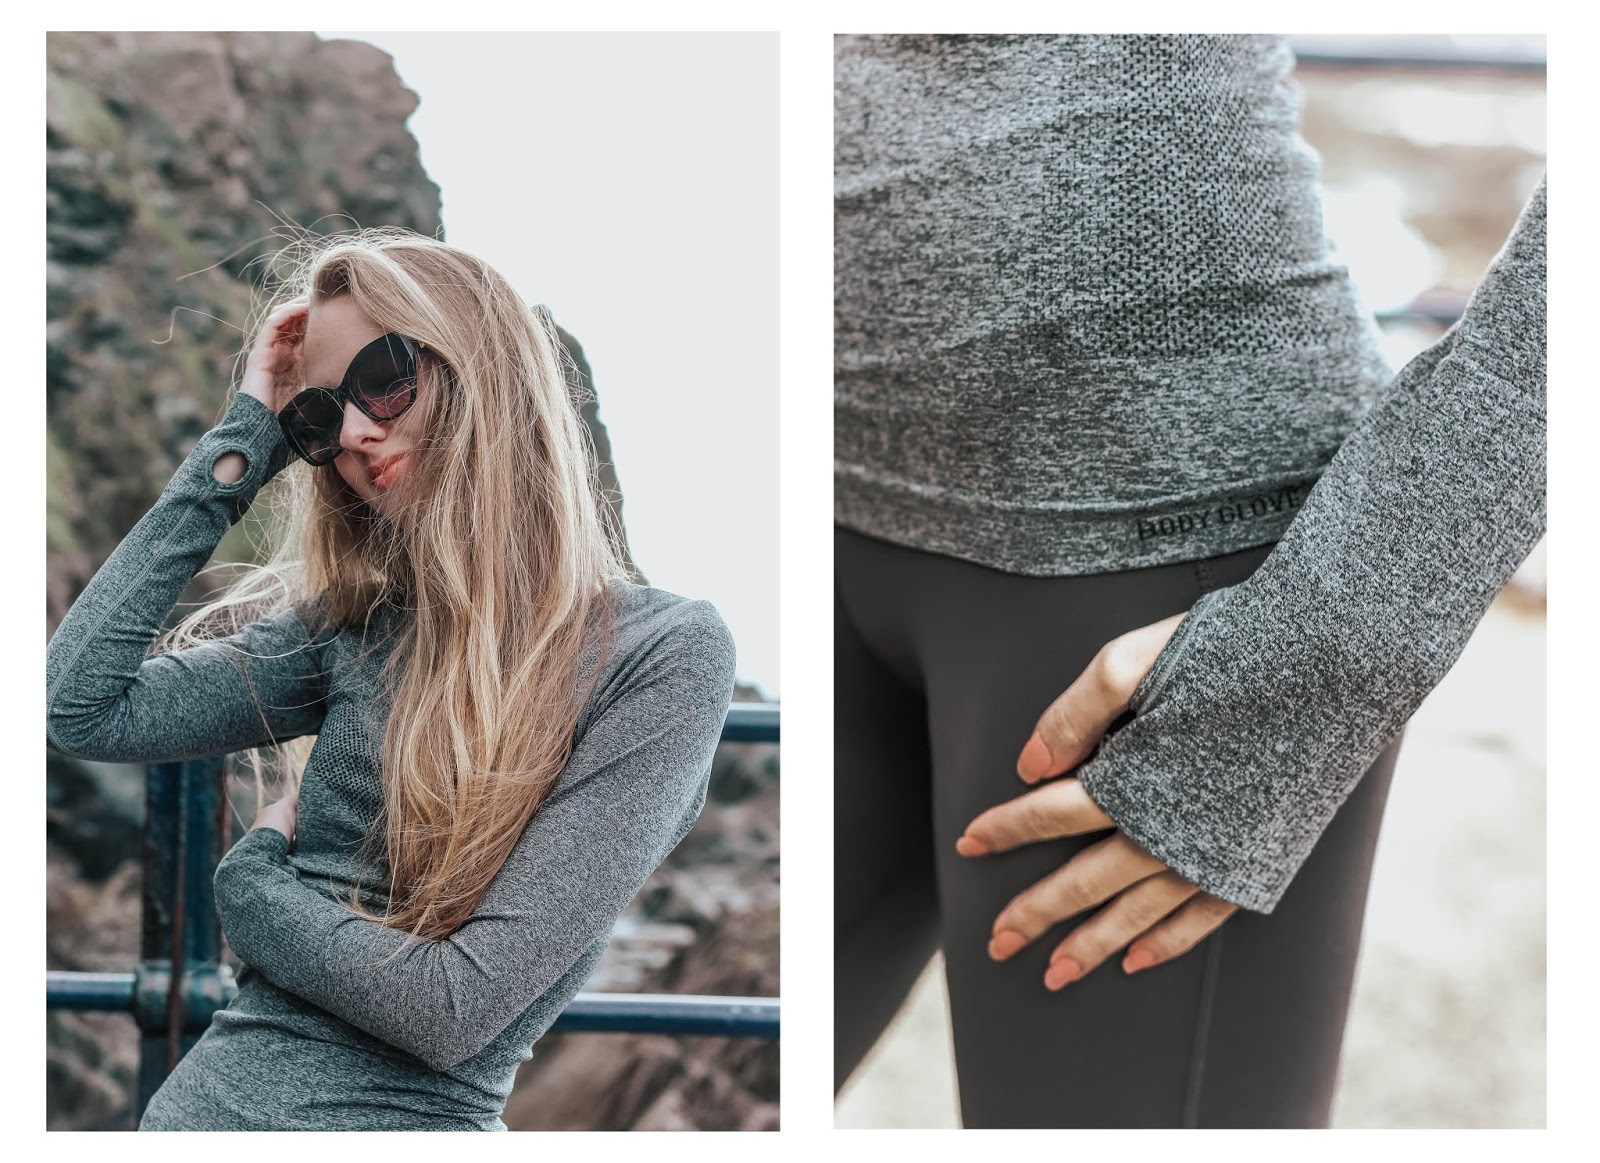 Bodyglove Activewear Joshua Tree Top in Charcoal